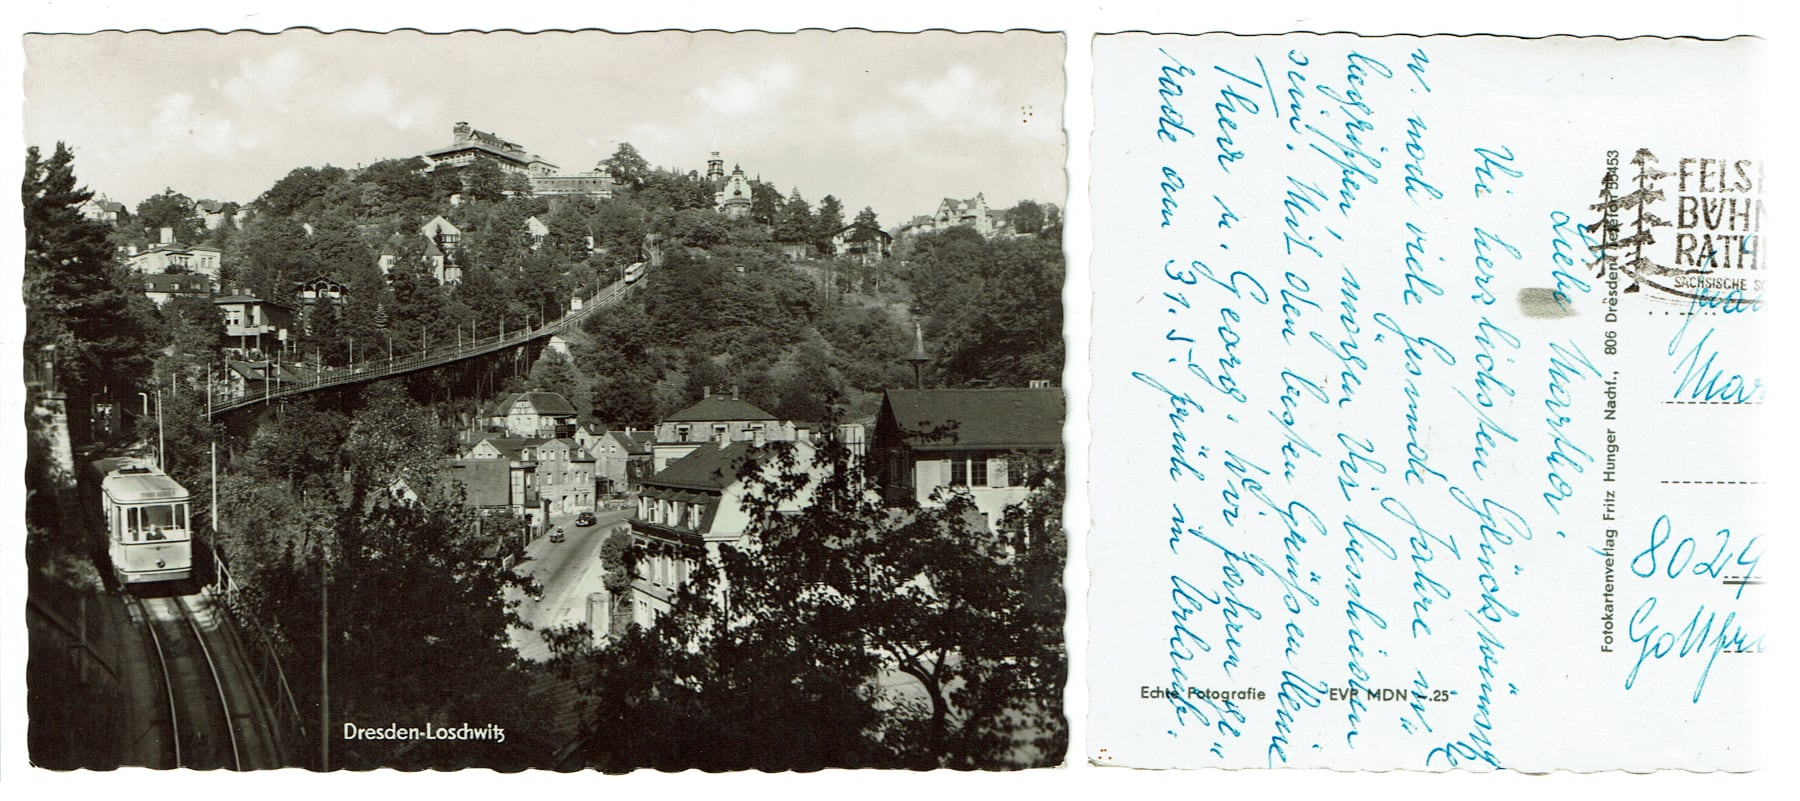 Scan of an old post card (showing the Loschwitz district of Dresden)